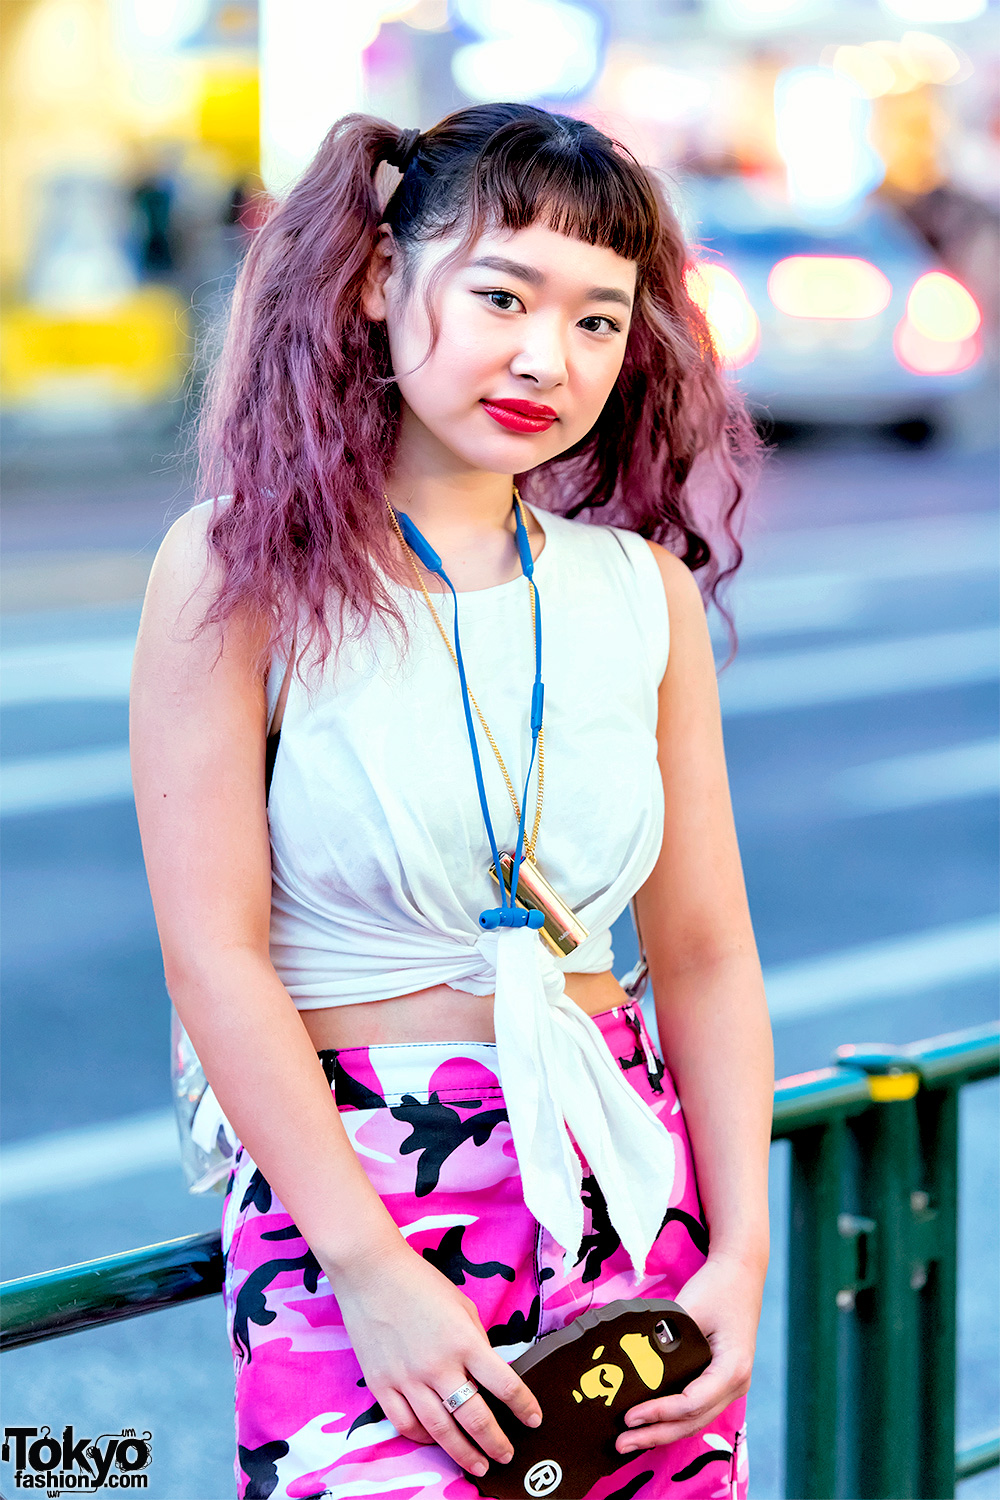 59aa7aef19a4 Her bag choice is a leather and plaid backpack and she's also wearing a  jeweled choker and sunglasses. Her favorite fashion brand is UNIF.